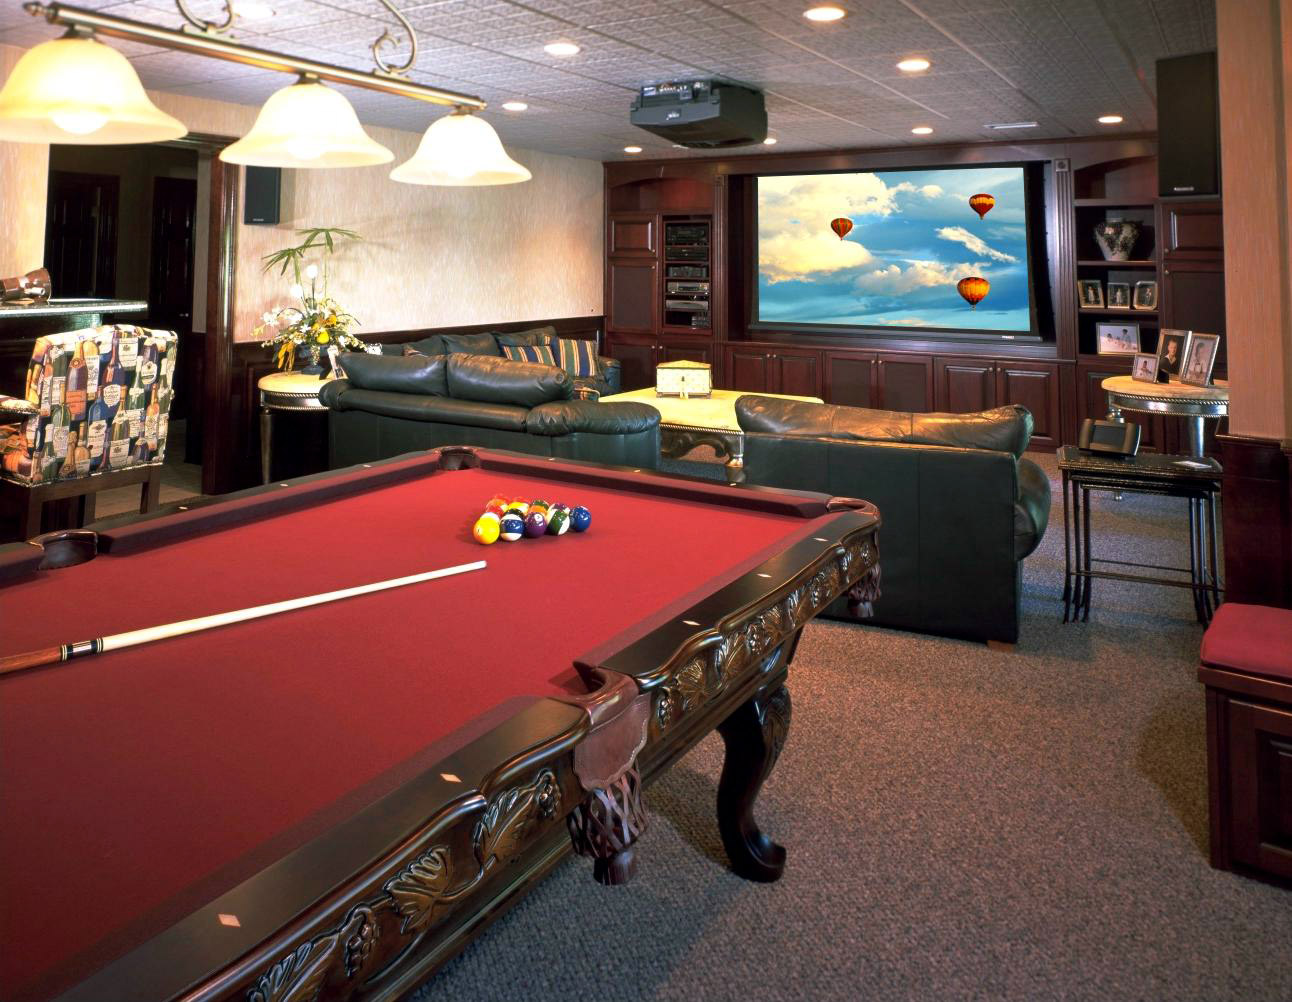 77 Masculine Game Room Design Ideas Digsdigs Indoor Game Room Decorating Ideas With Carpet Game